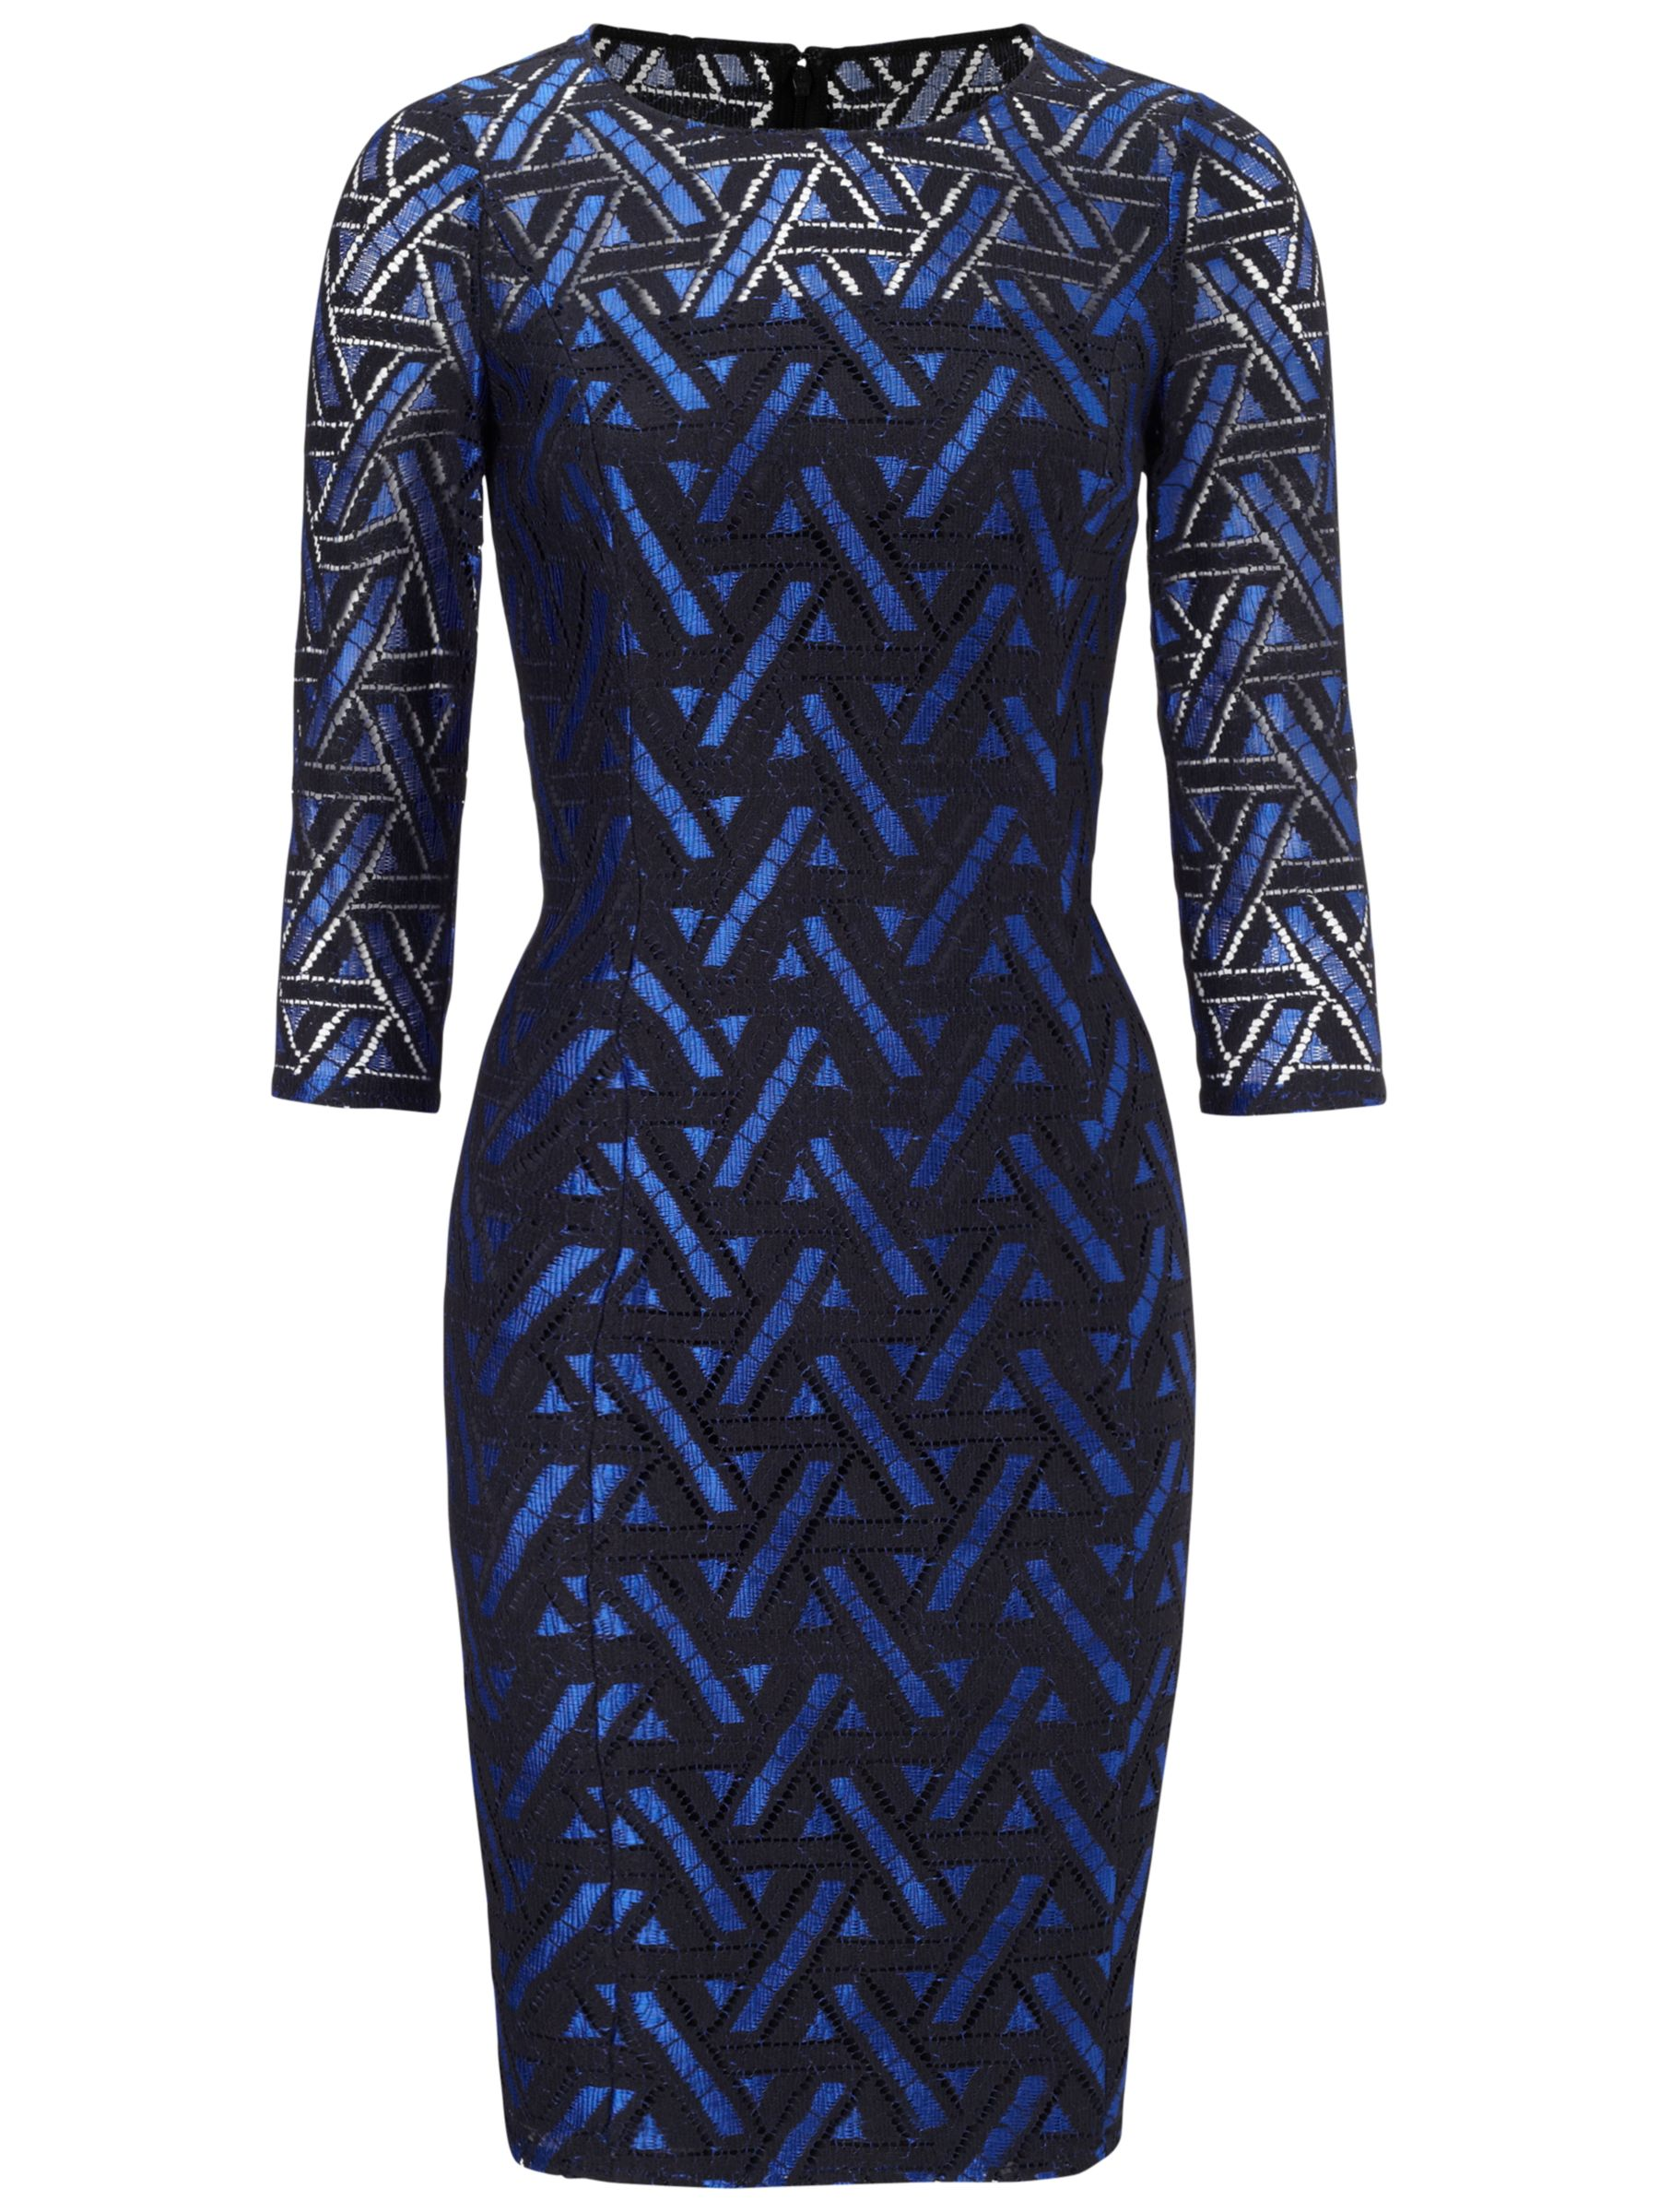 adrianna papell geometric lace dress navy/bright blue, adrianna, papell, geometric, lace, dress, navy/bright, blue, adrianna papell, 8|14|12|16, women, plus size, brands a-k, womens dresses, special offers, womenswear offers, womens dresses offers, 1729391